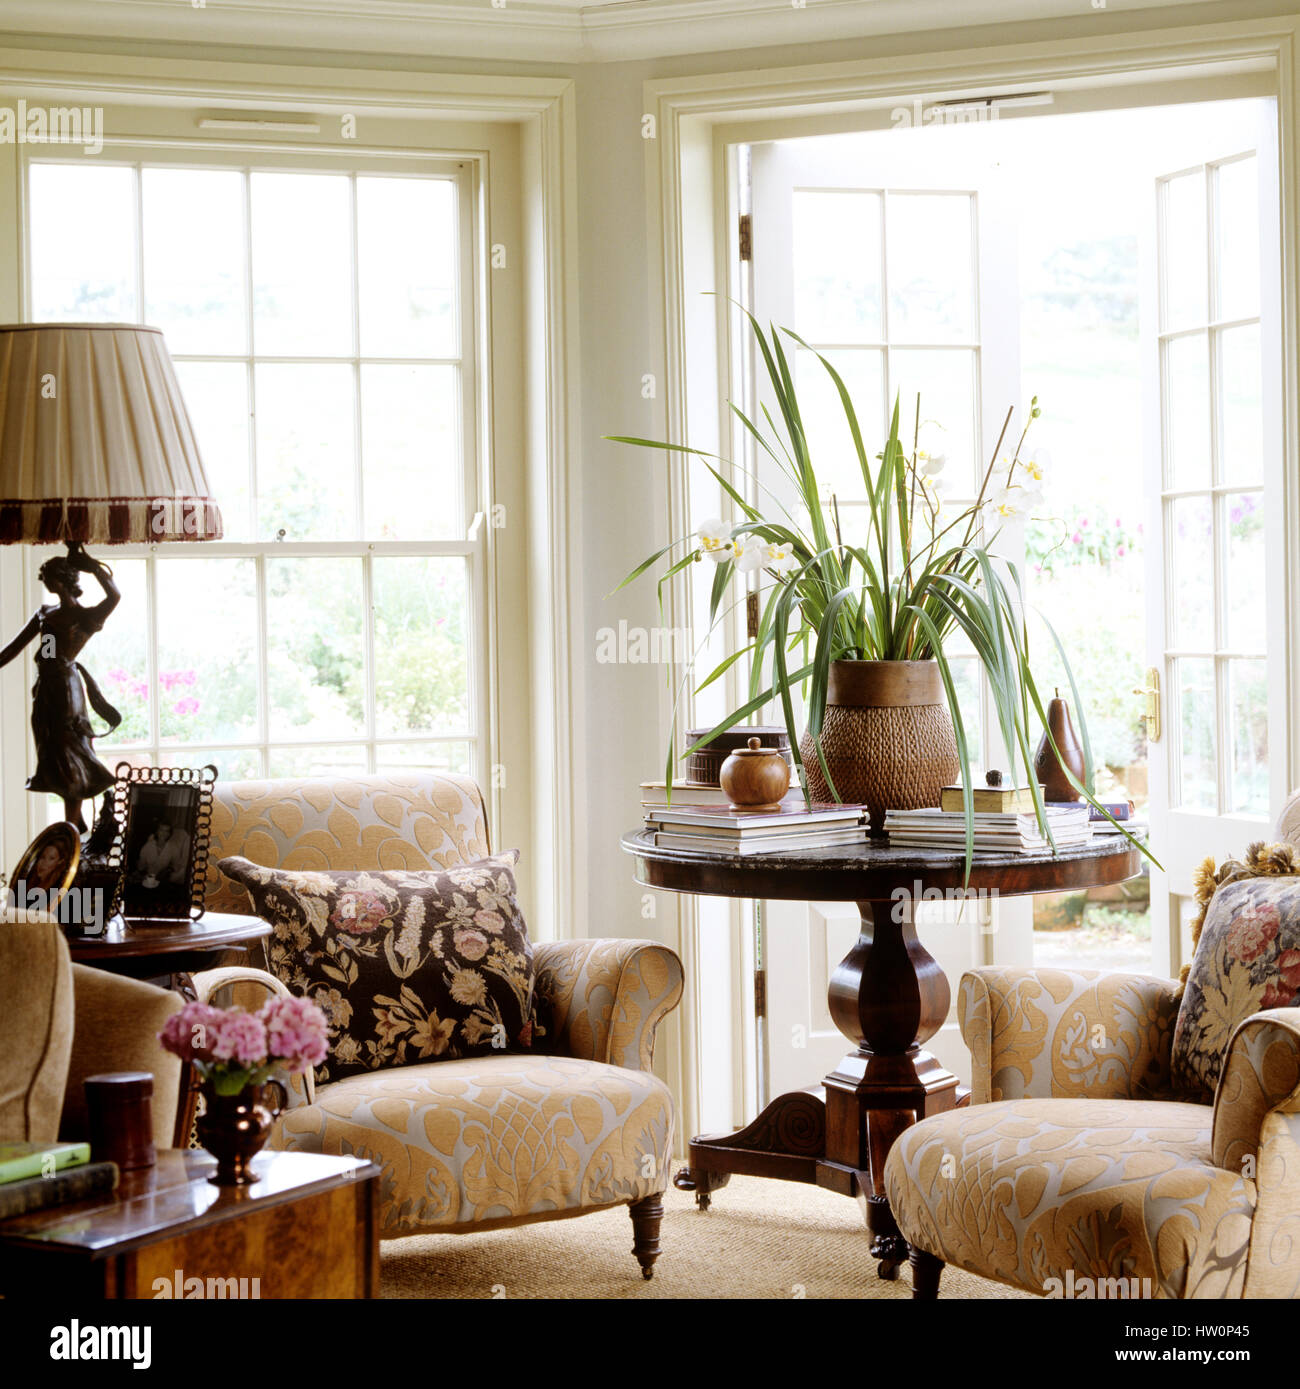 Country French Living Room Stock Photos & Country French Living Room ...